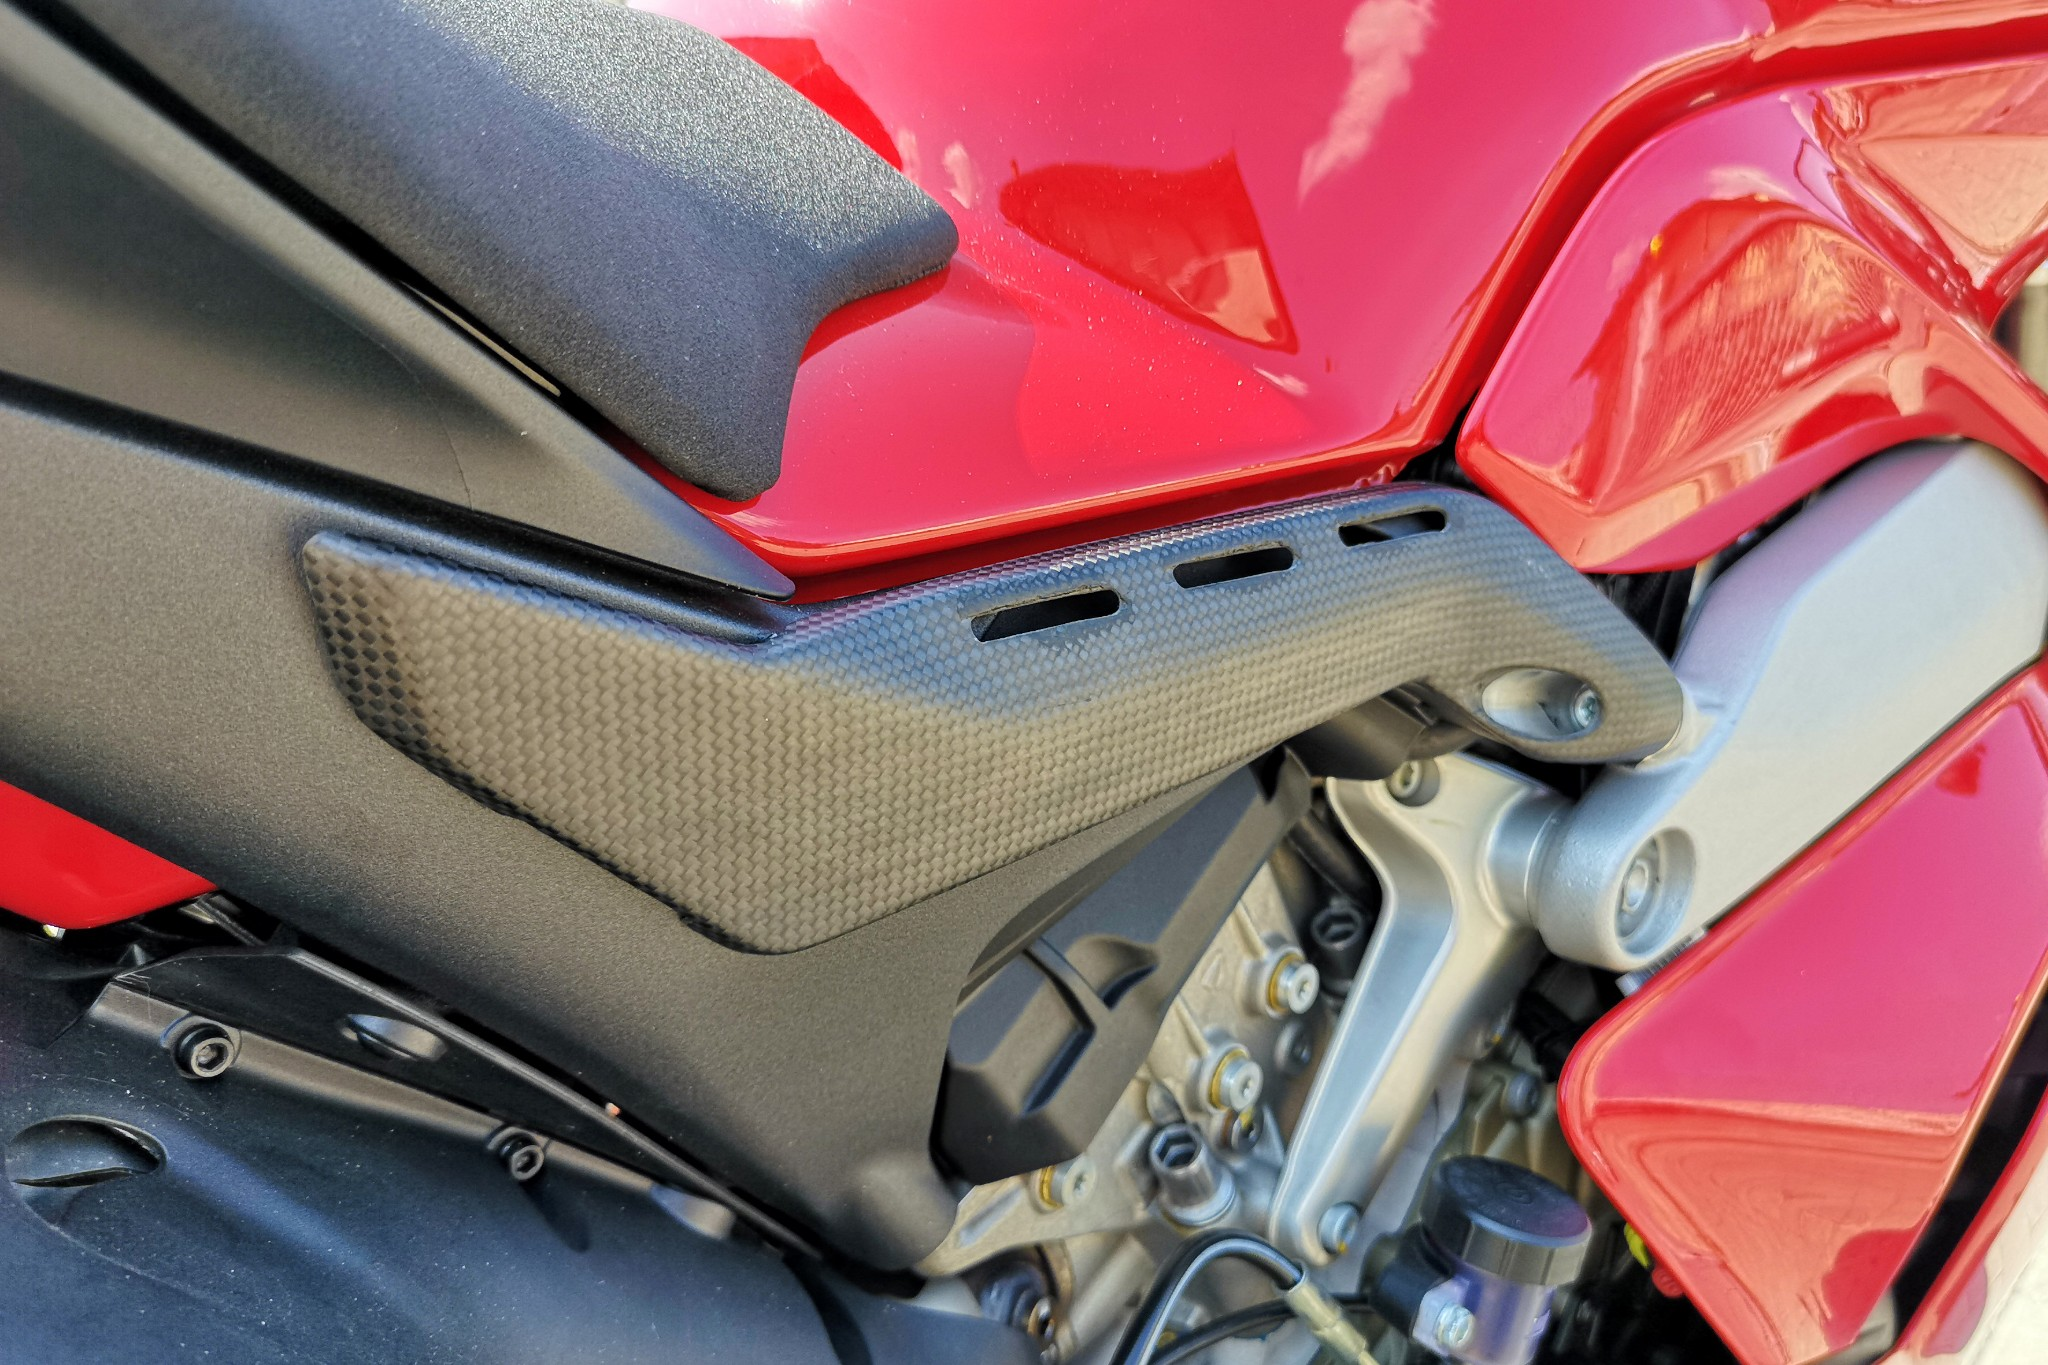 Ducati Panigale V4 S Cnc Racing Carbon Fiber Rear Subframe Covers